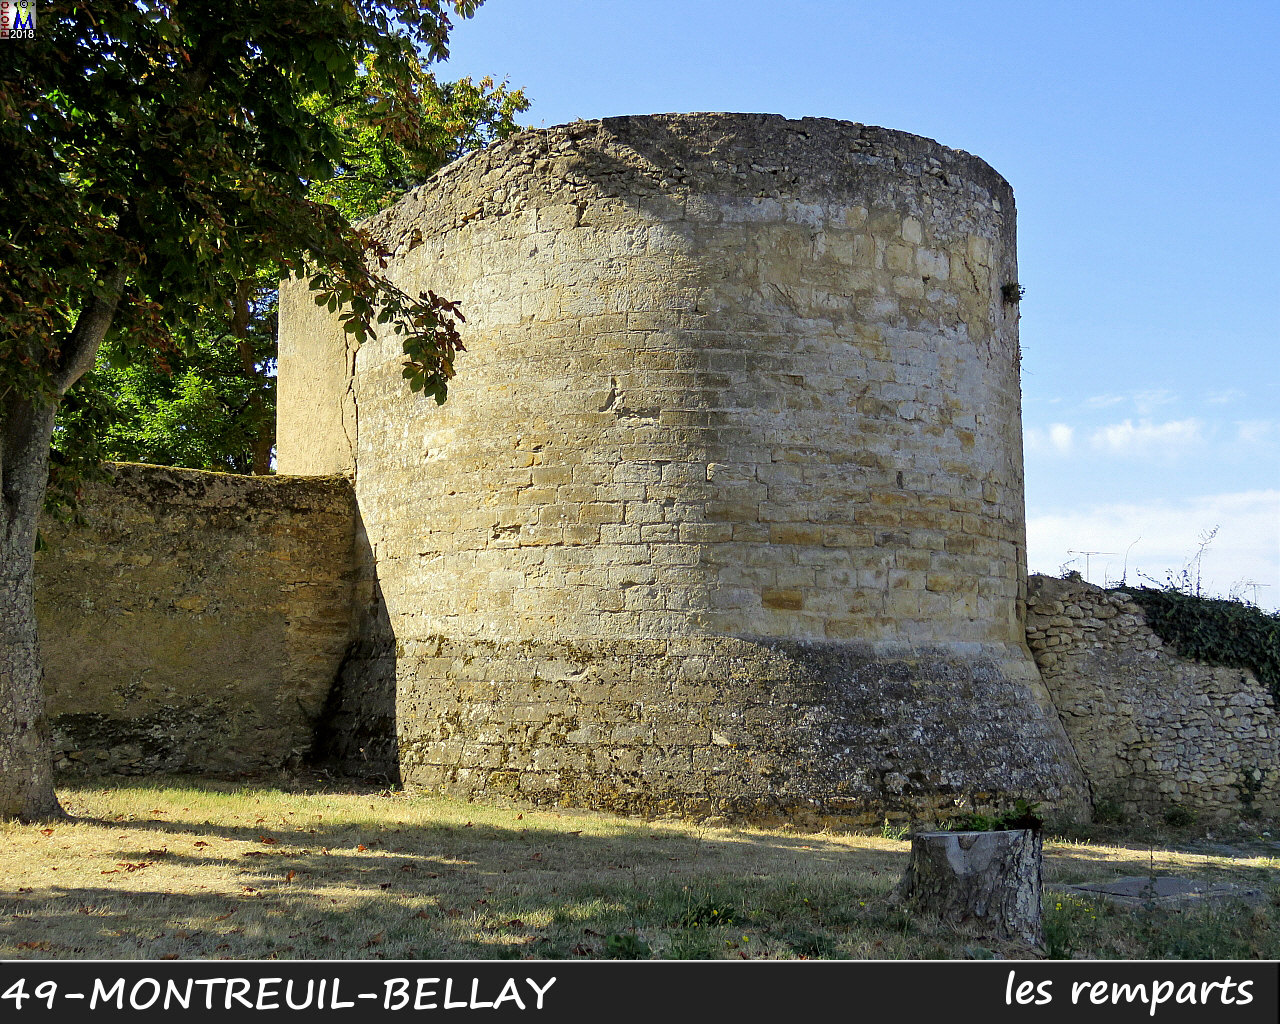 49MONTREUIL-BELLAY_remparts_1014.jpg